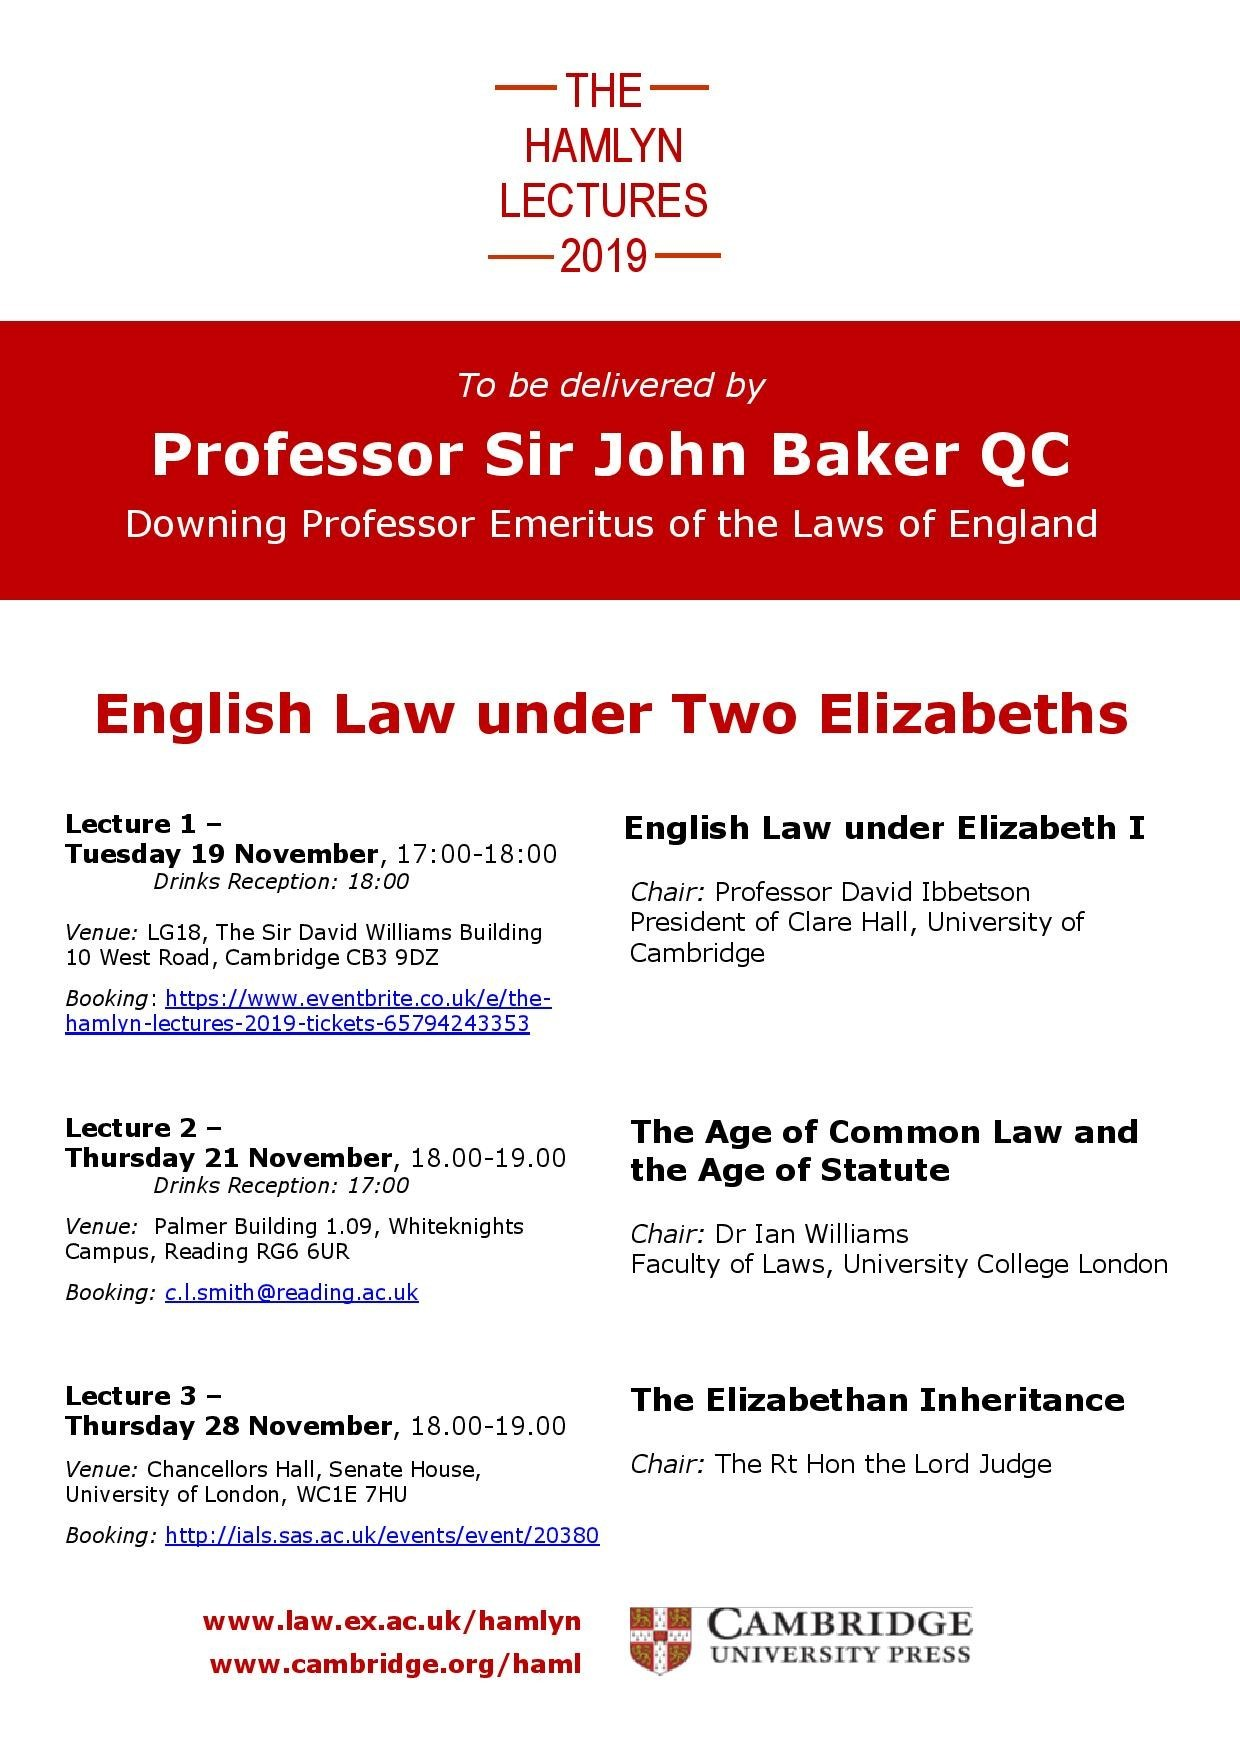 Law School at Exeter University - the Hamlyn Lectures 2019